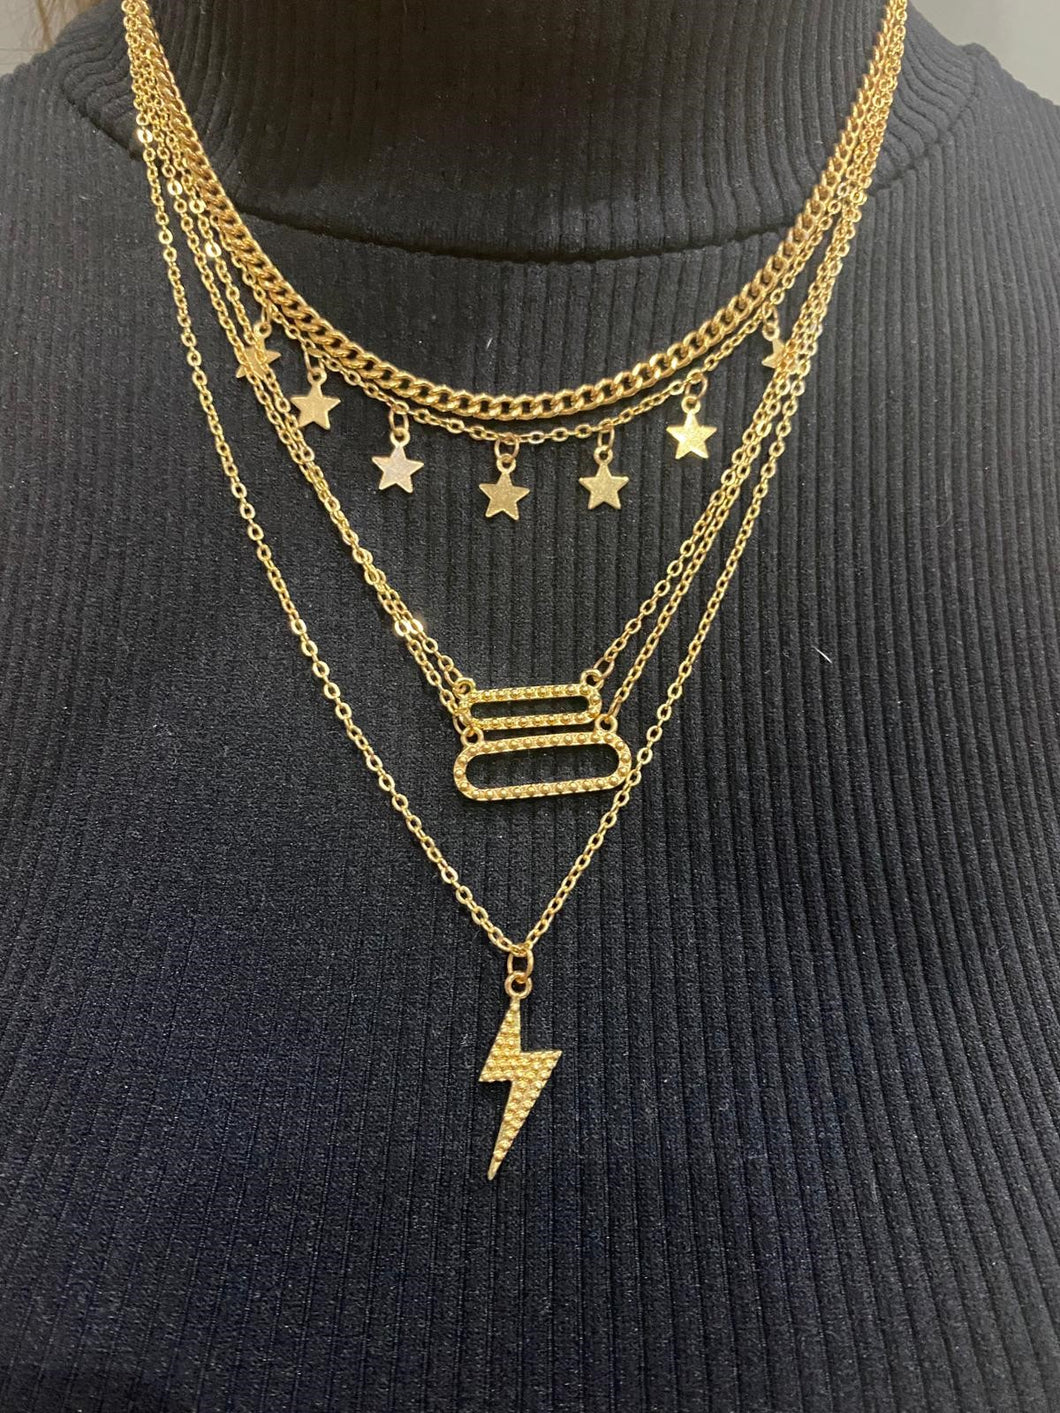 Retro Multi-element Lighting Star Necklace